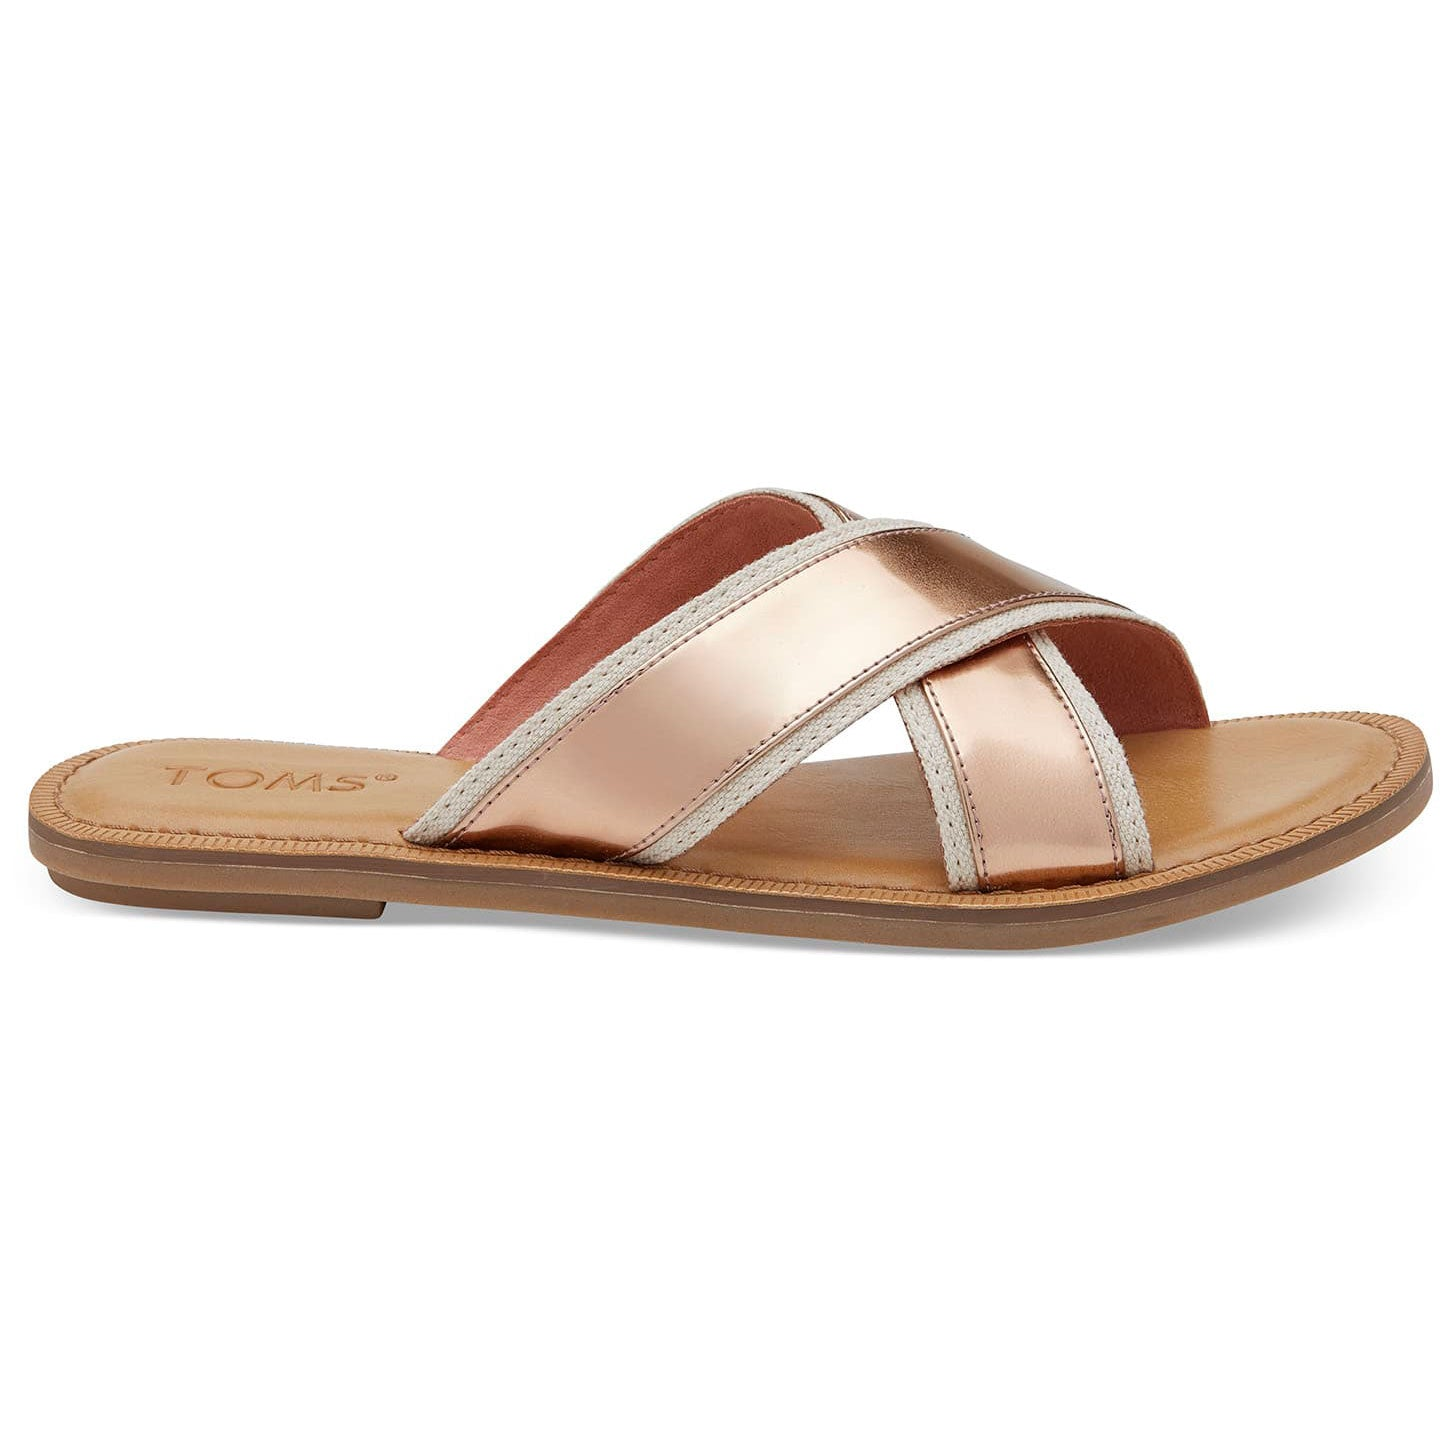 Toms Womens Viv Rose Gold Specchio Sandals